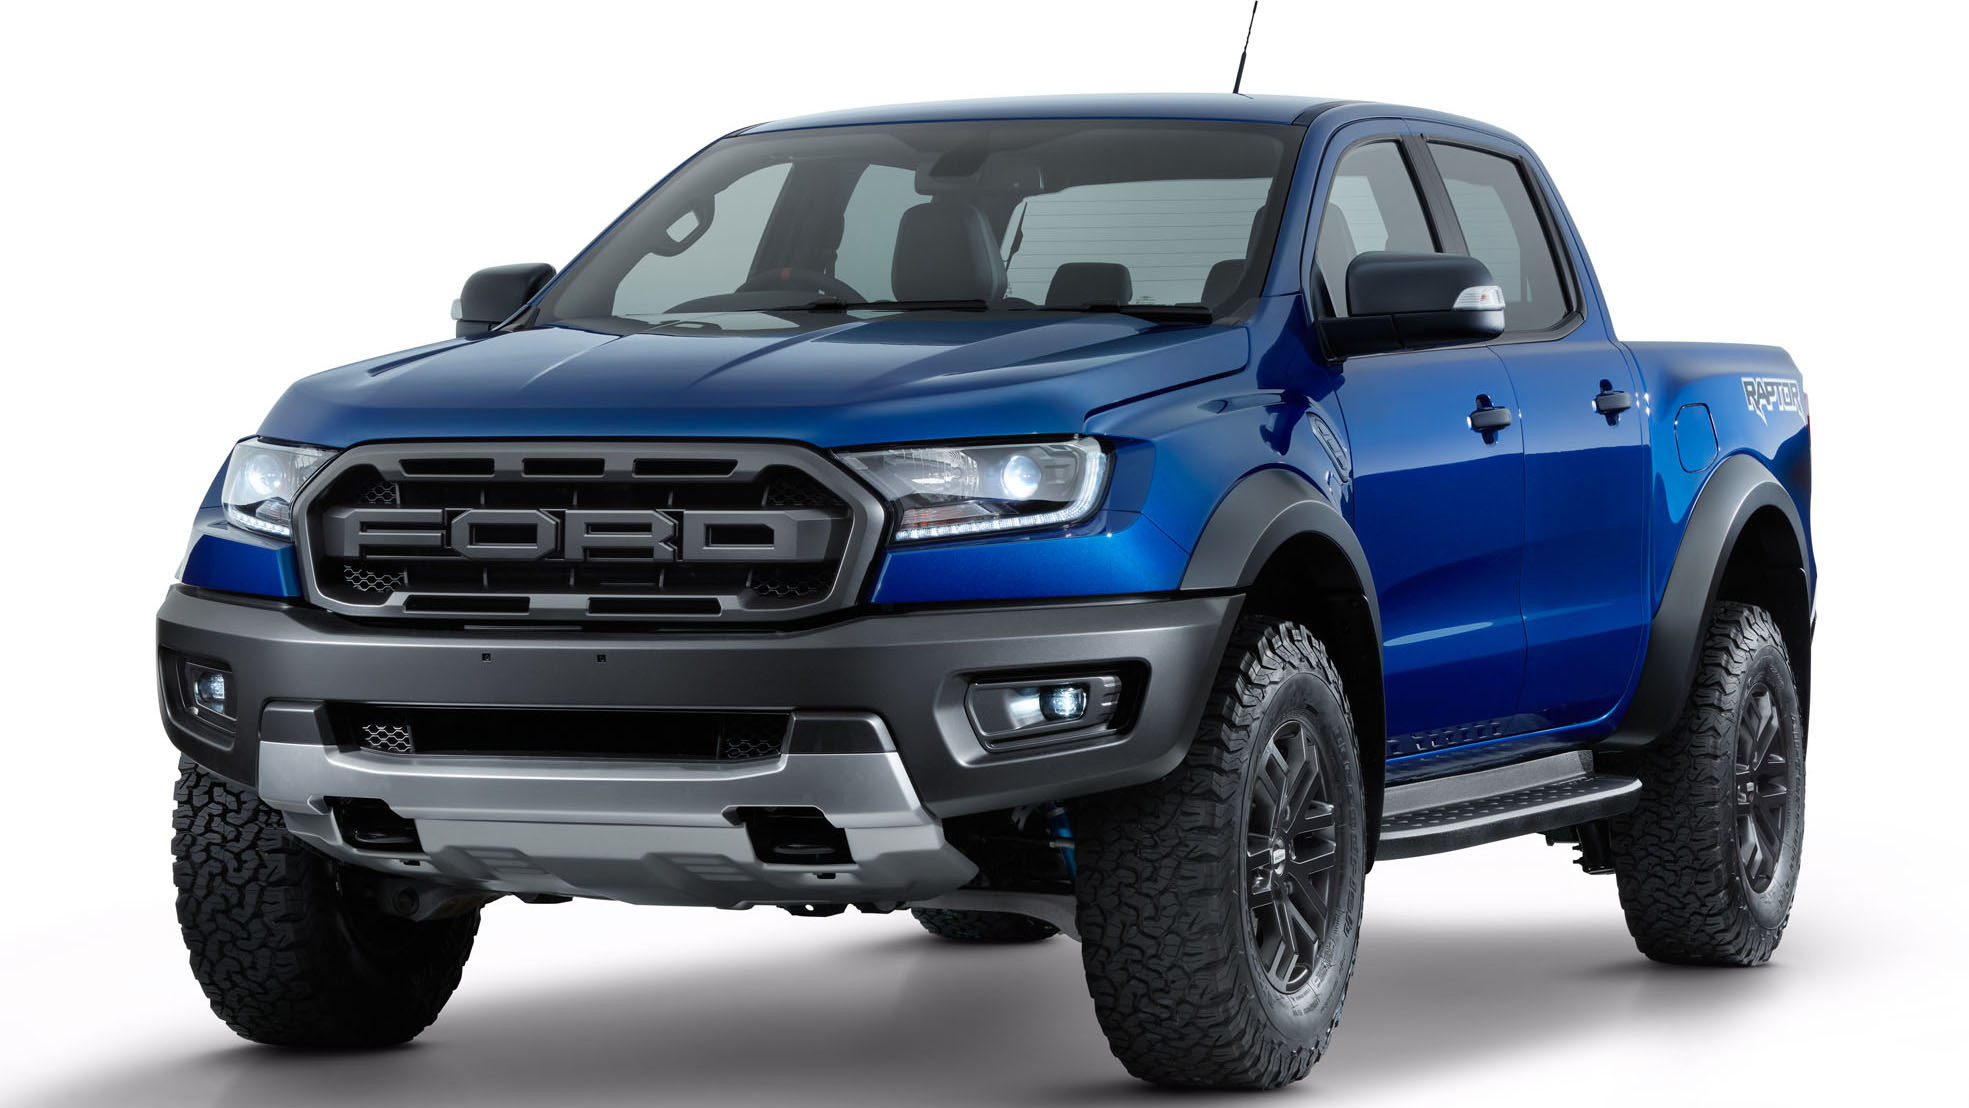 The 2020 Ford Bronco And 2019 Ford Ranger Will Be One And